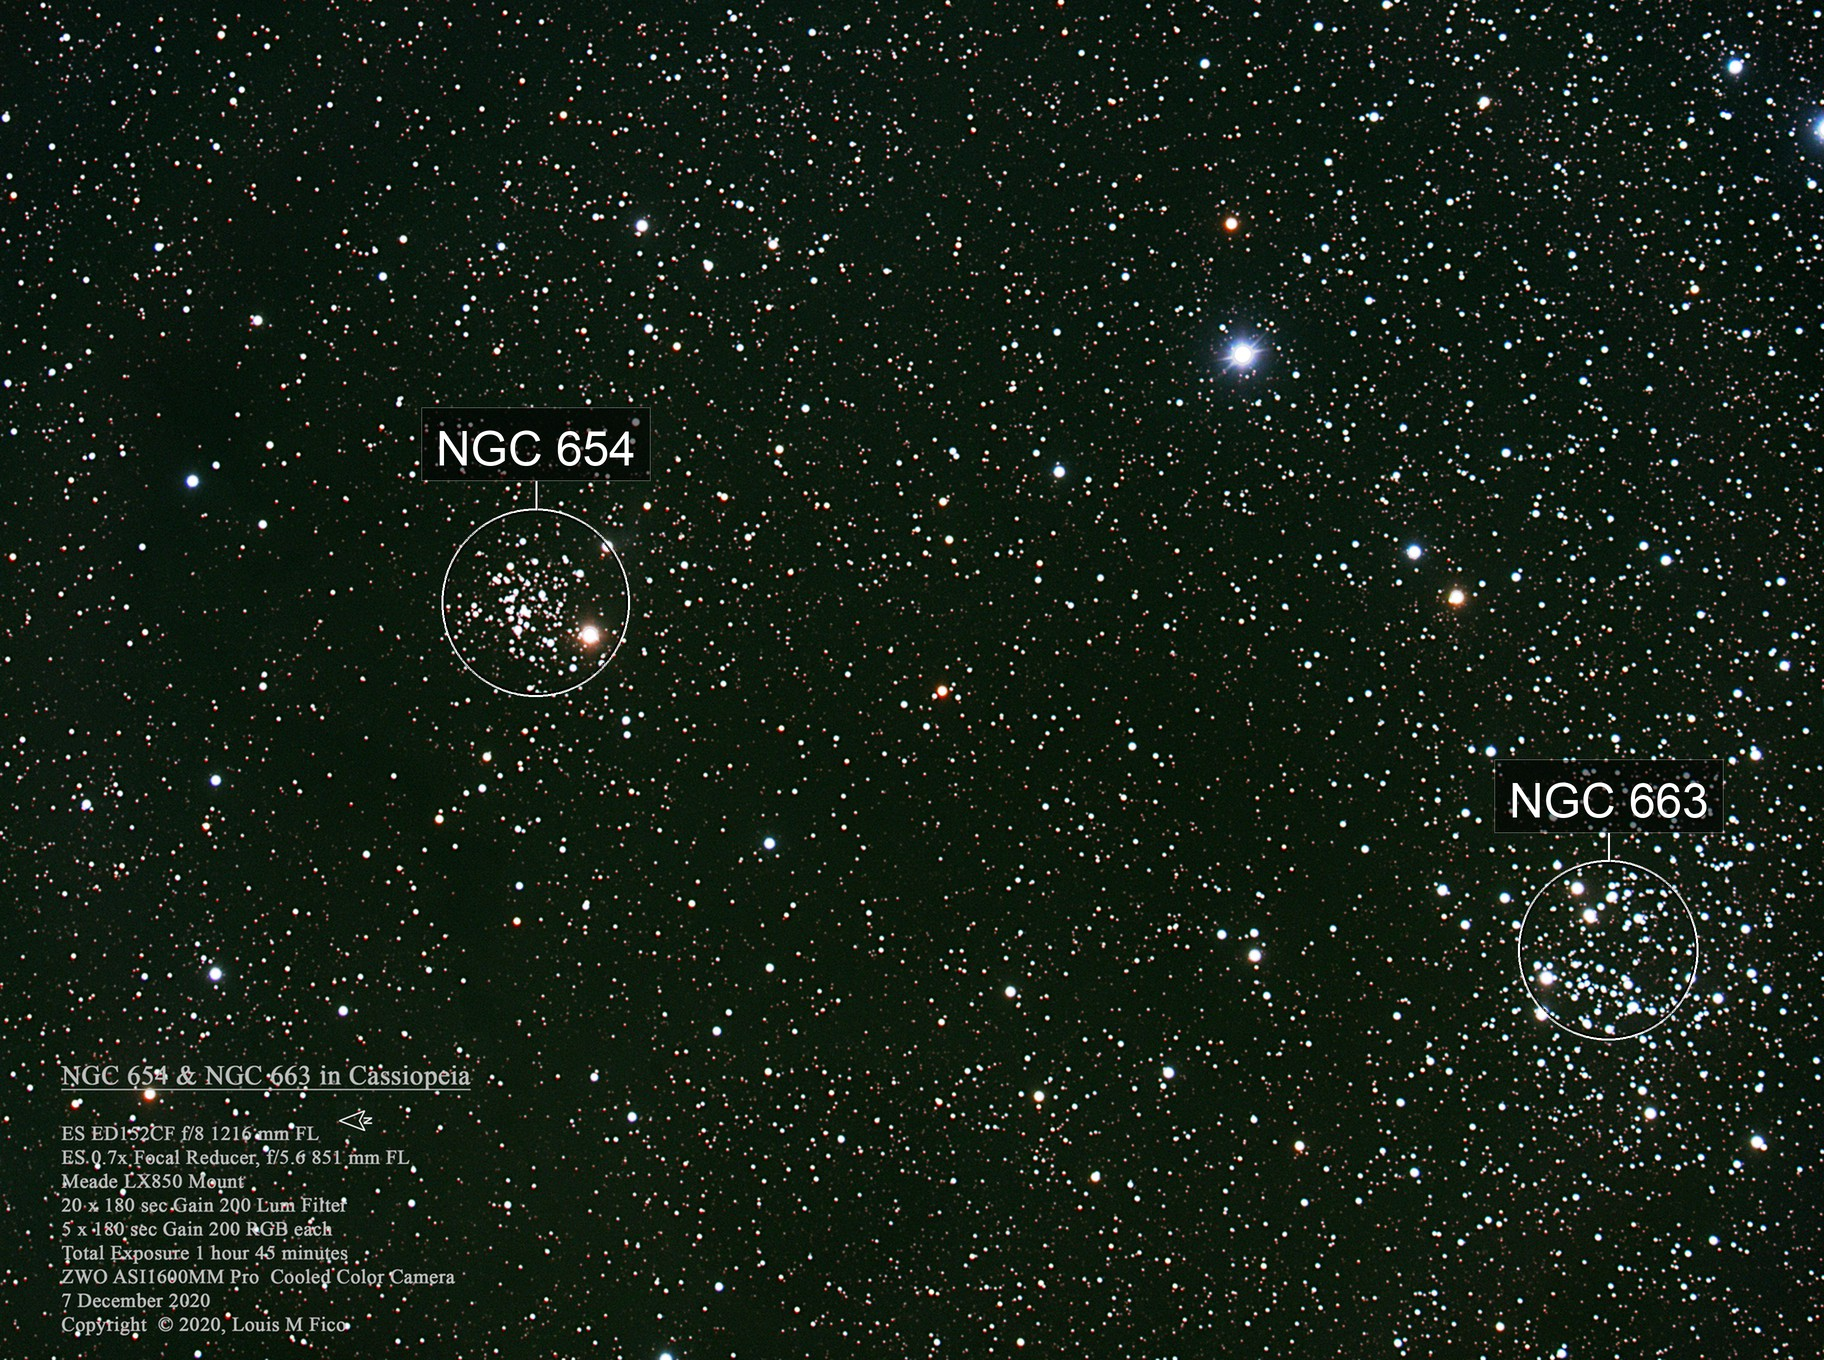 NGC 654 & NGC 663 in Cassiopeia